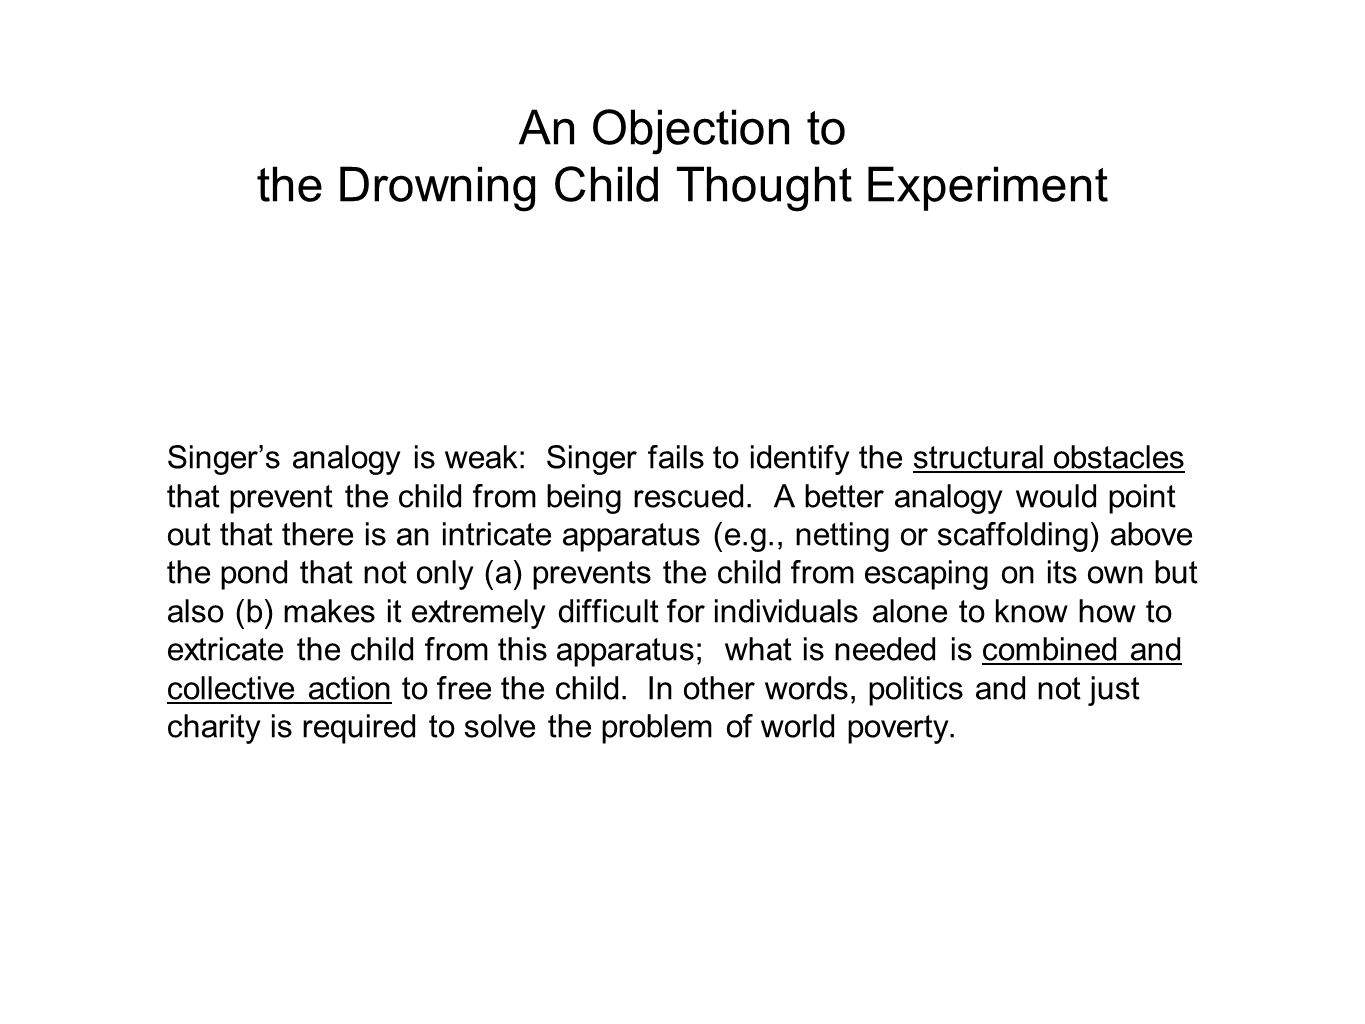 An Objection to the Drowning Child Thought Experiment